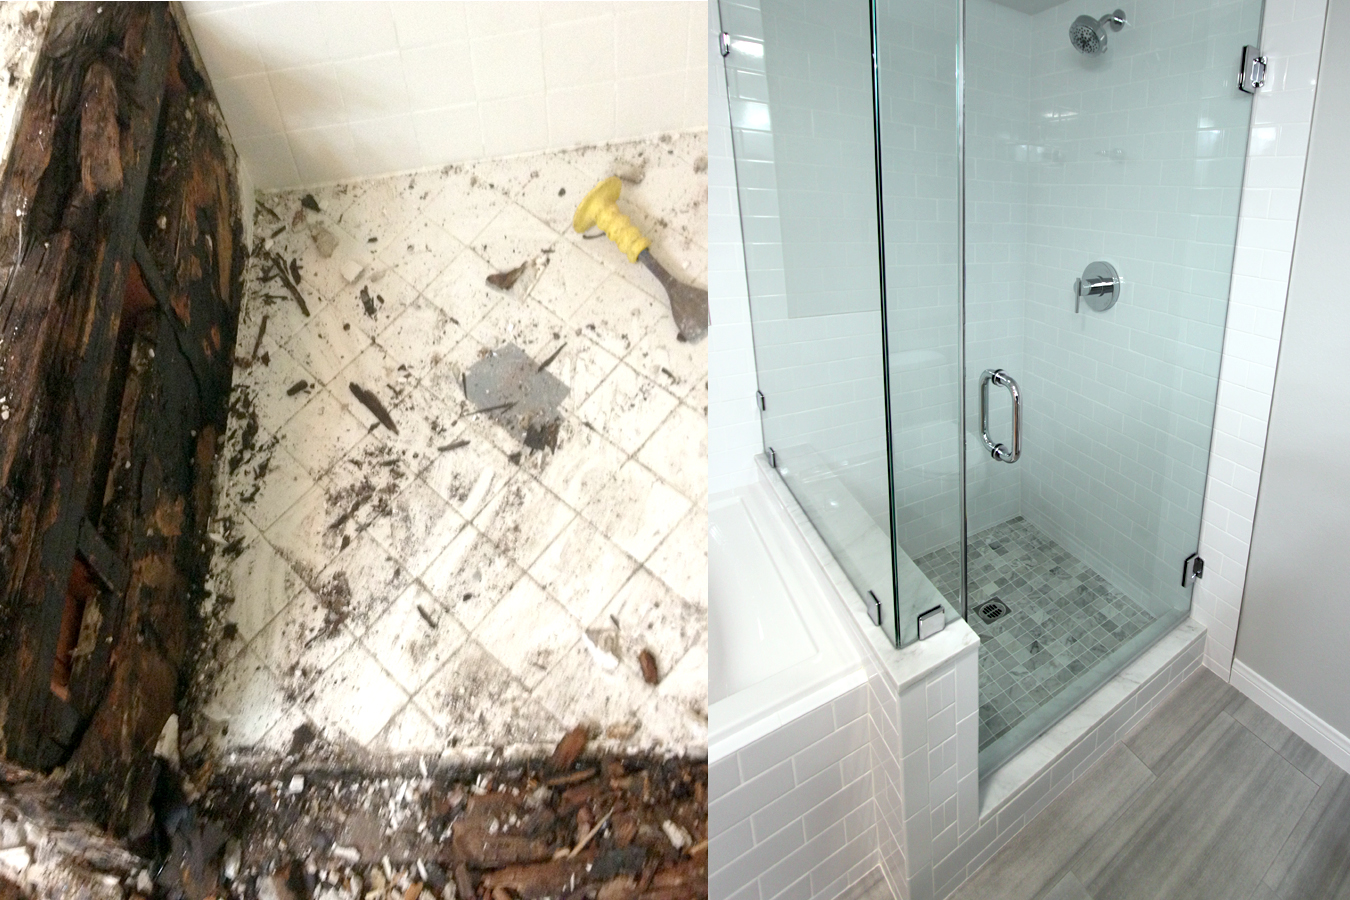 bathroom tile los angeles tile repairs los angeles tile contractors 323 662 1011 16796